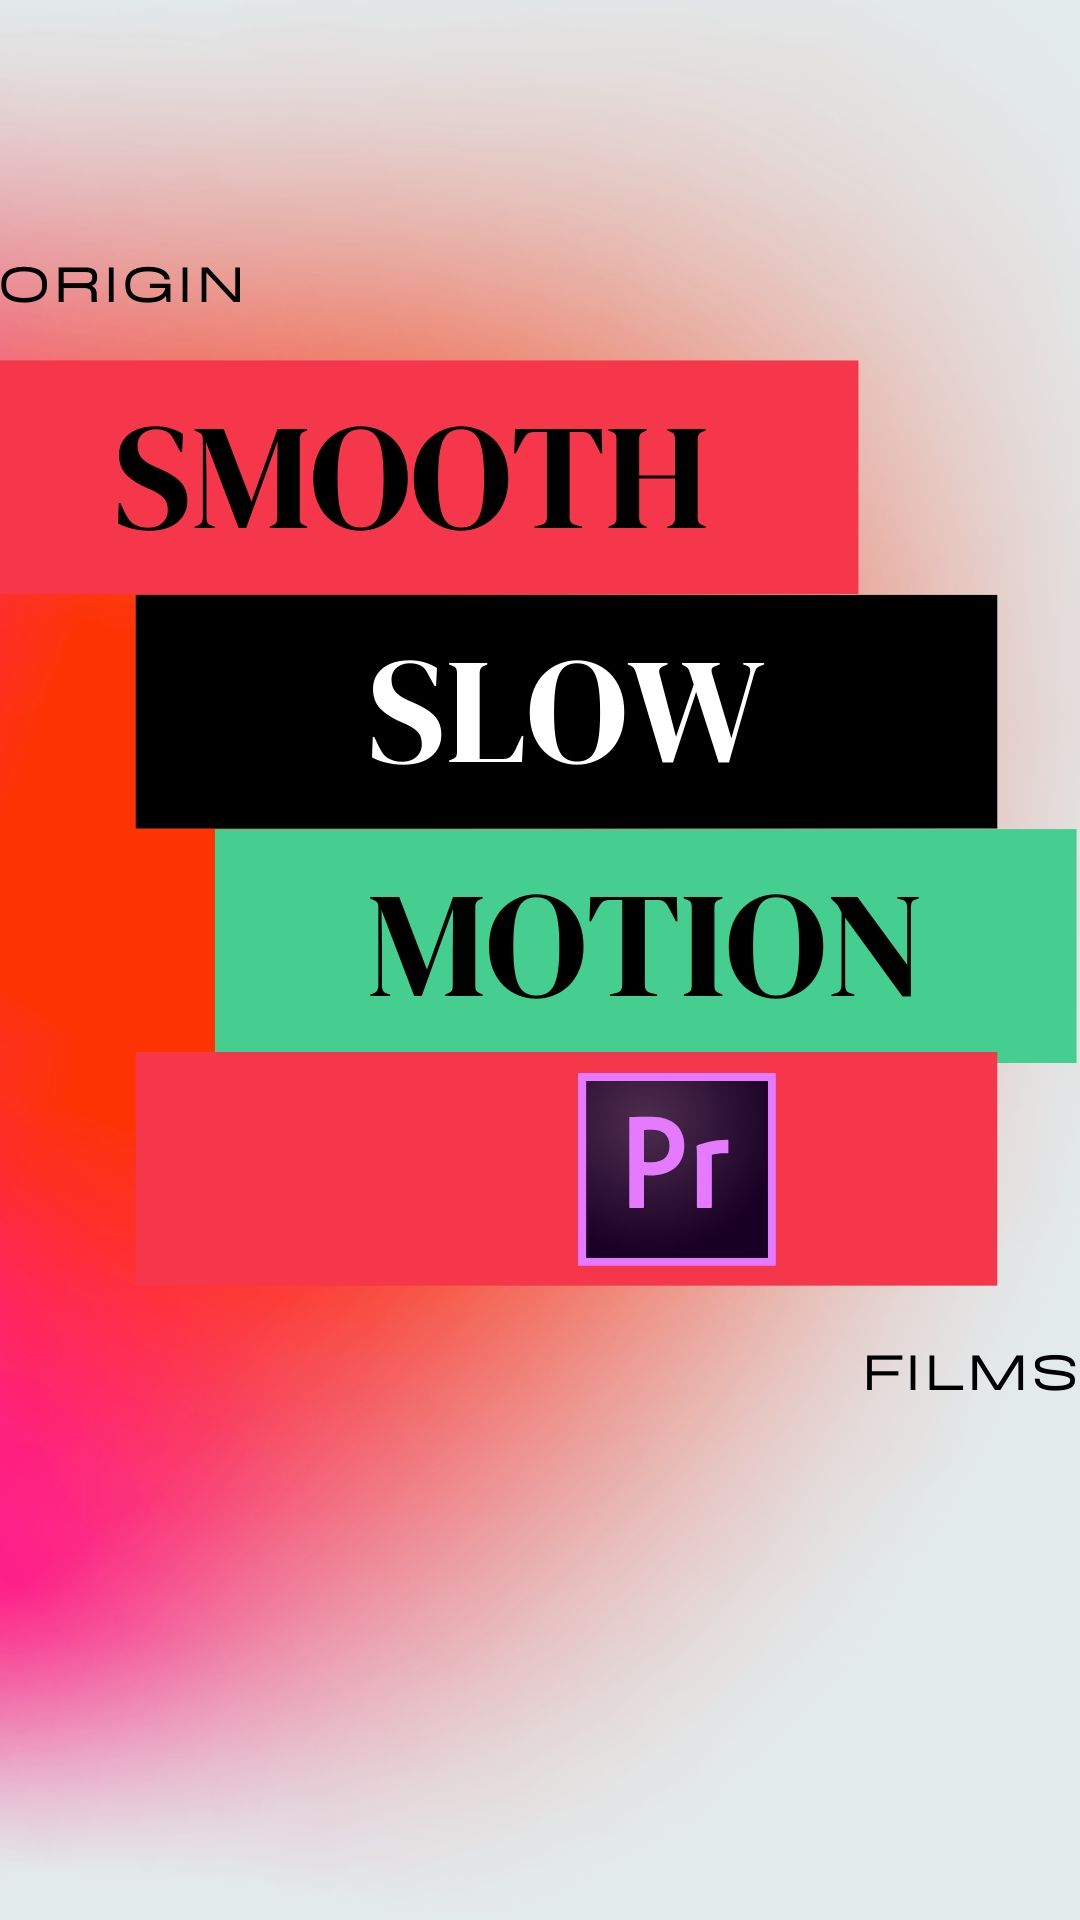 SMOOTH SLOW MOTION